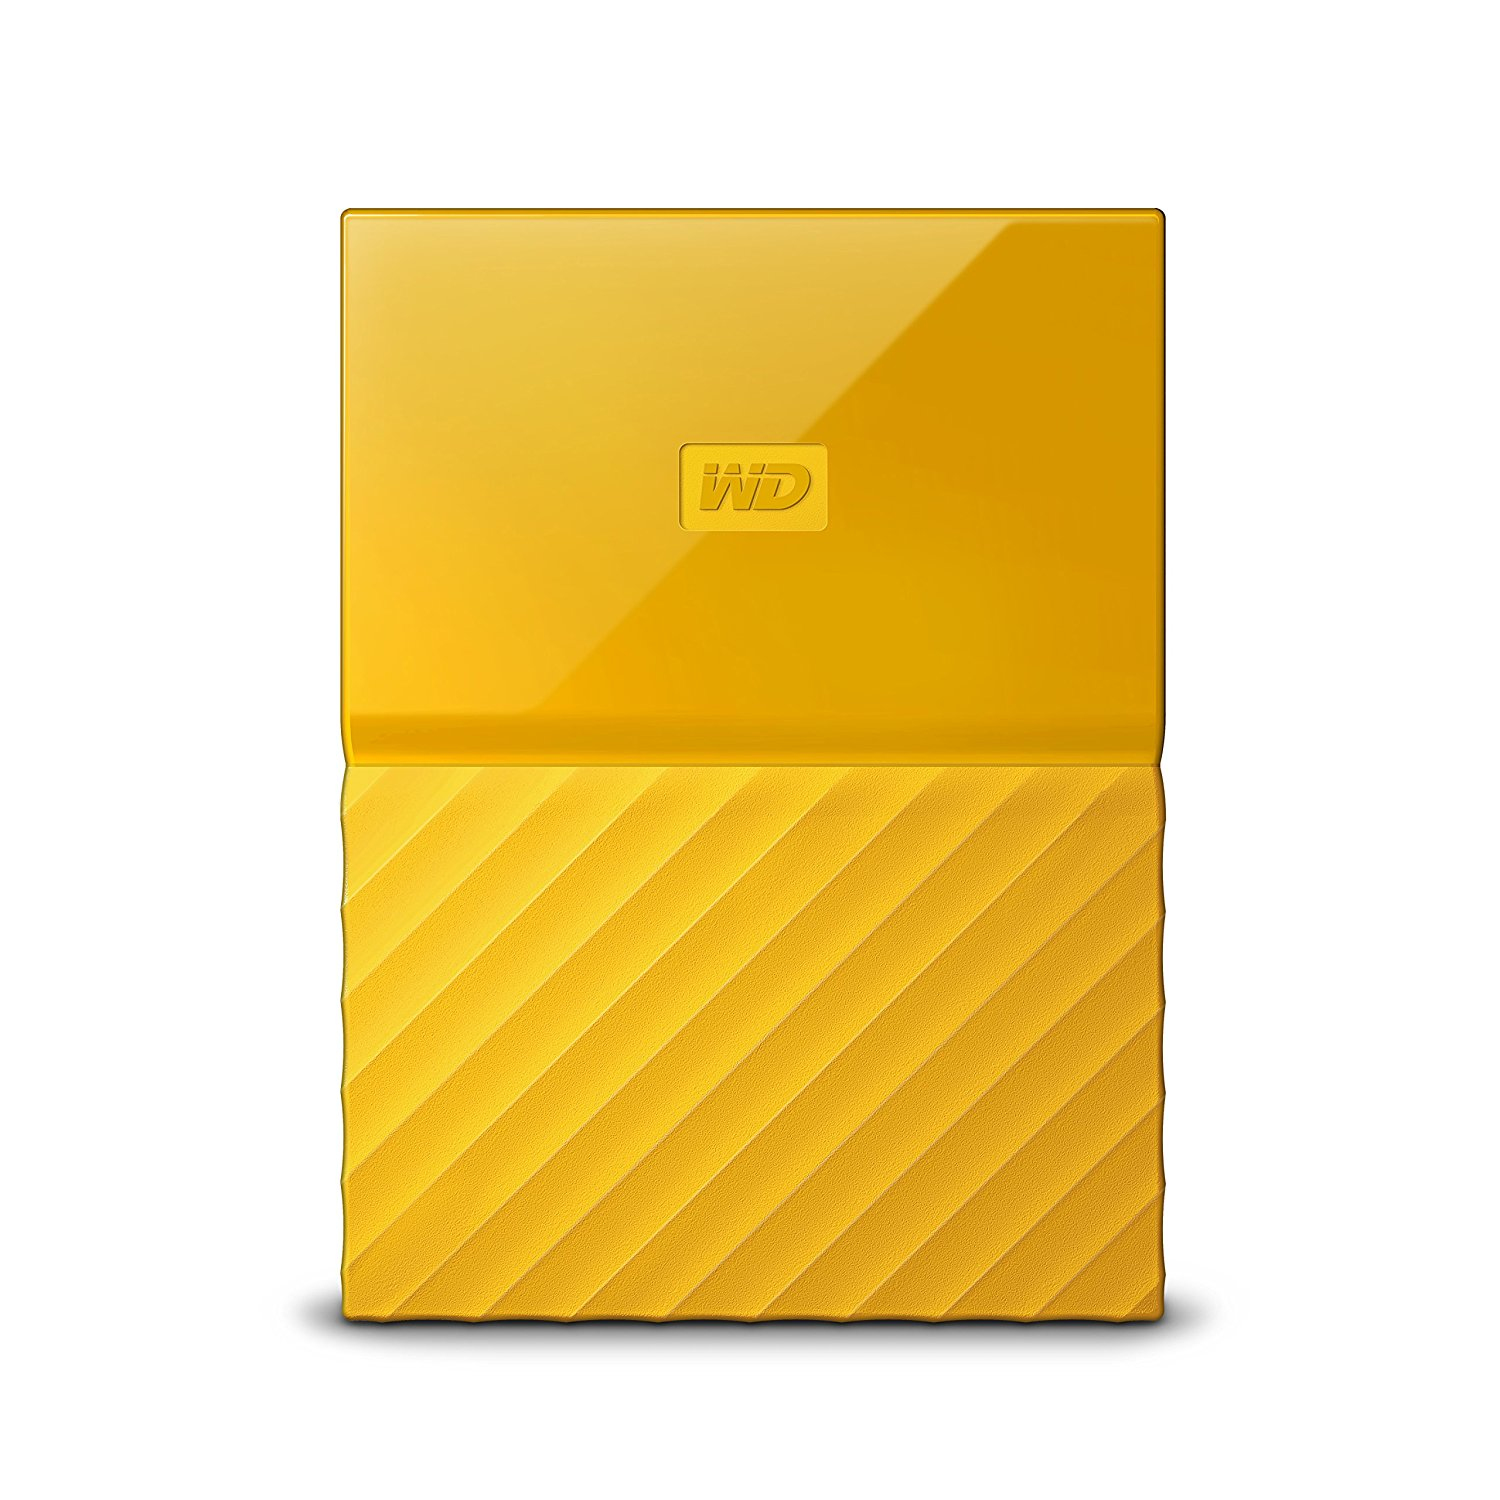 Western Digital My Passport 2000GB Yellow external hard drive